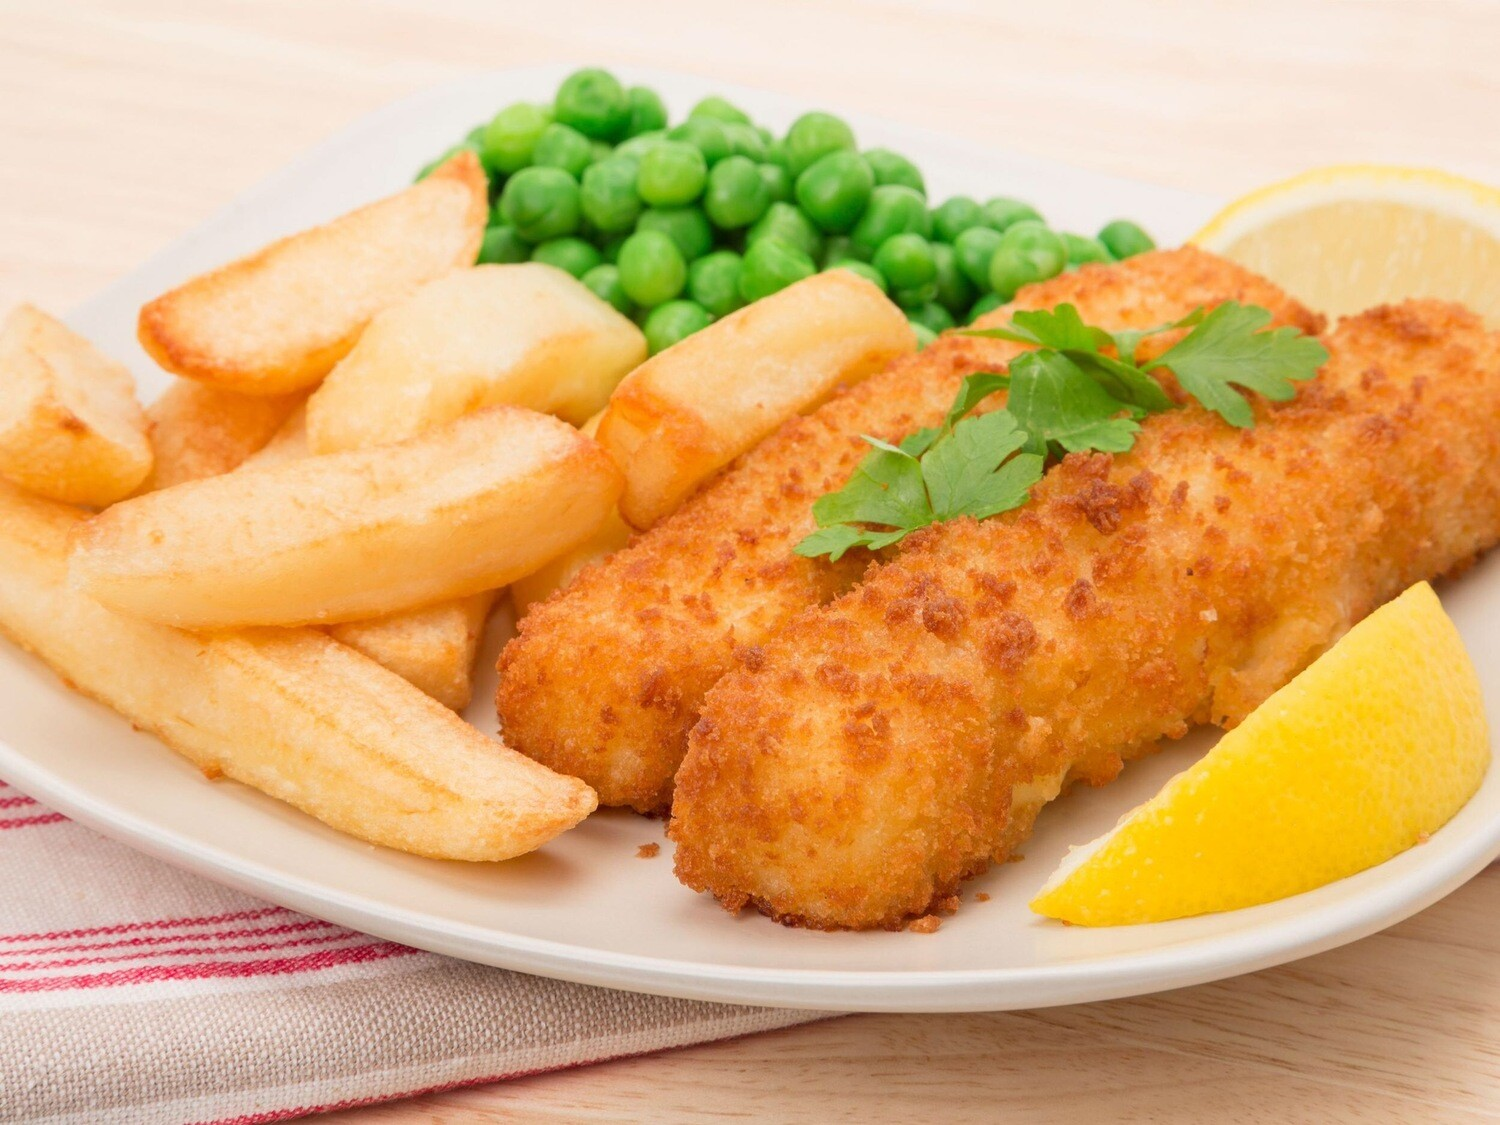 CHILDREN'S FISH FINGERS